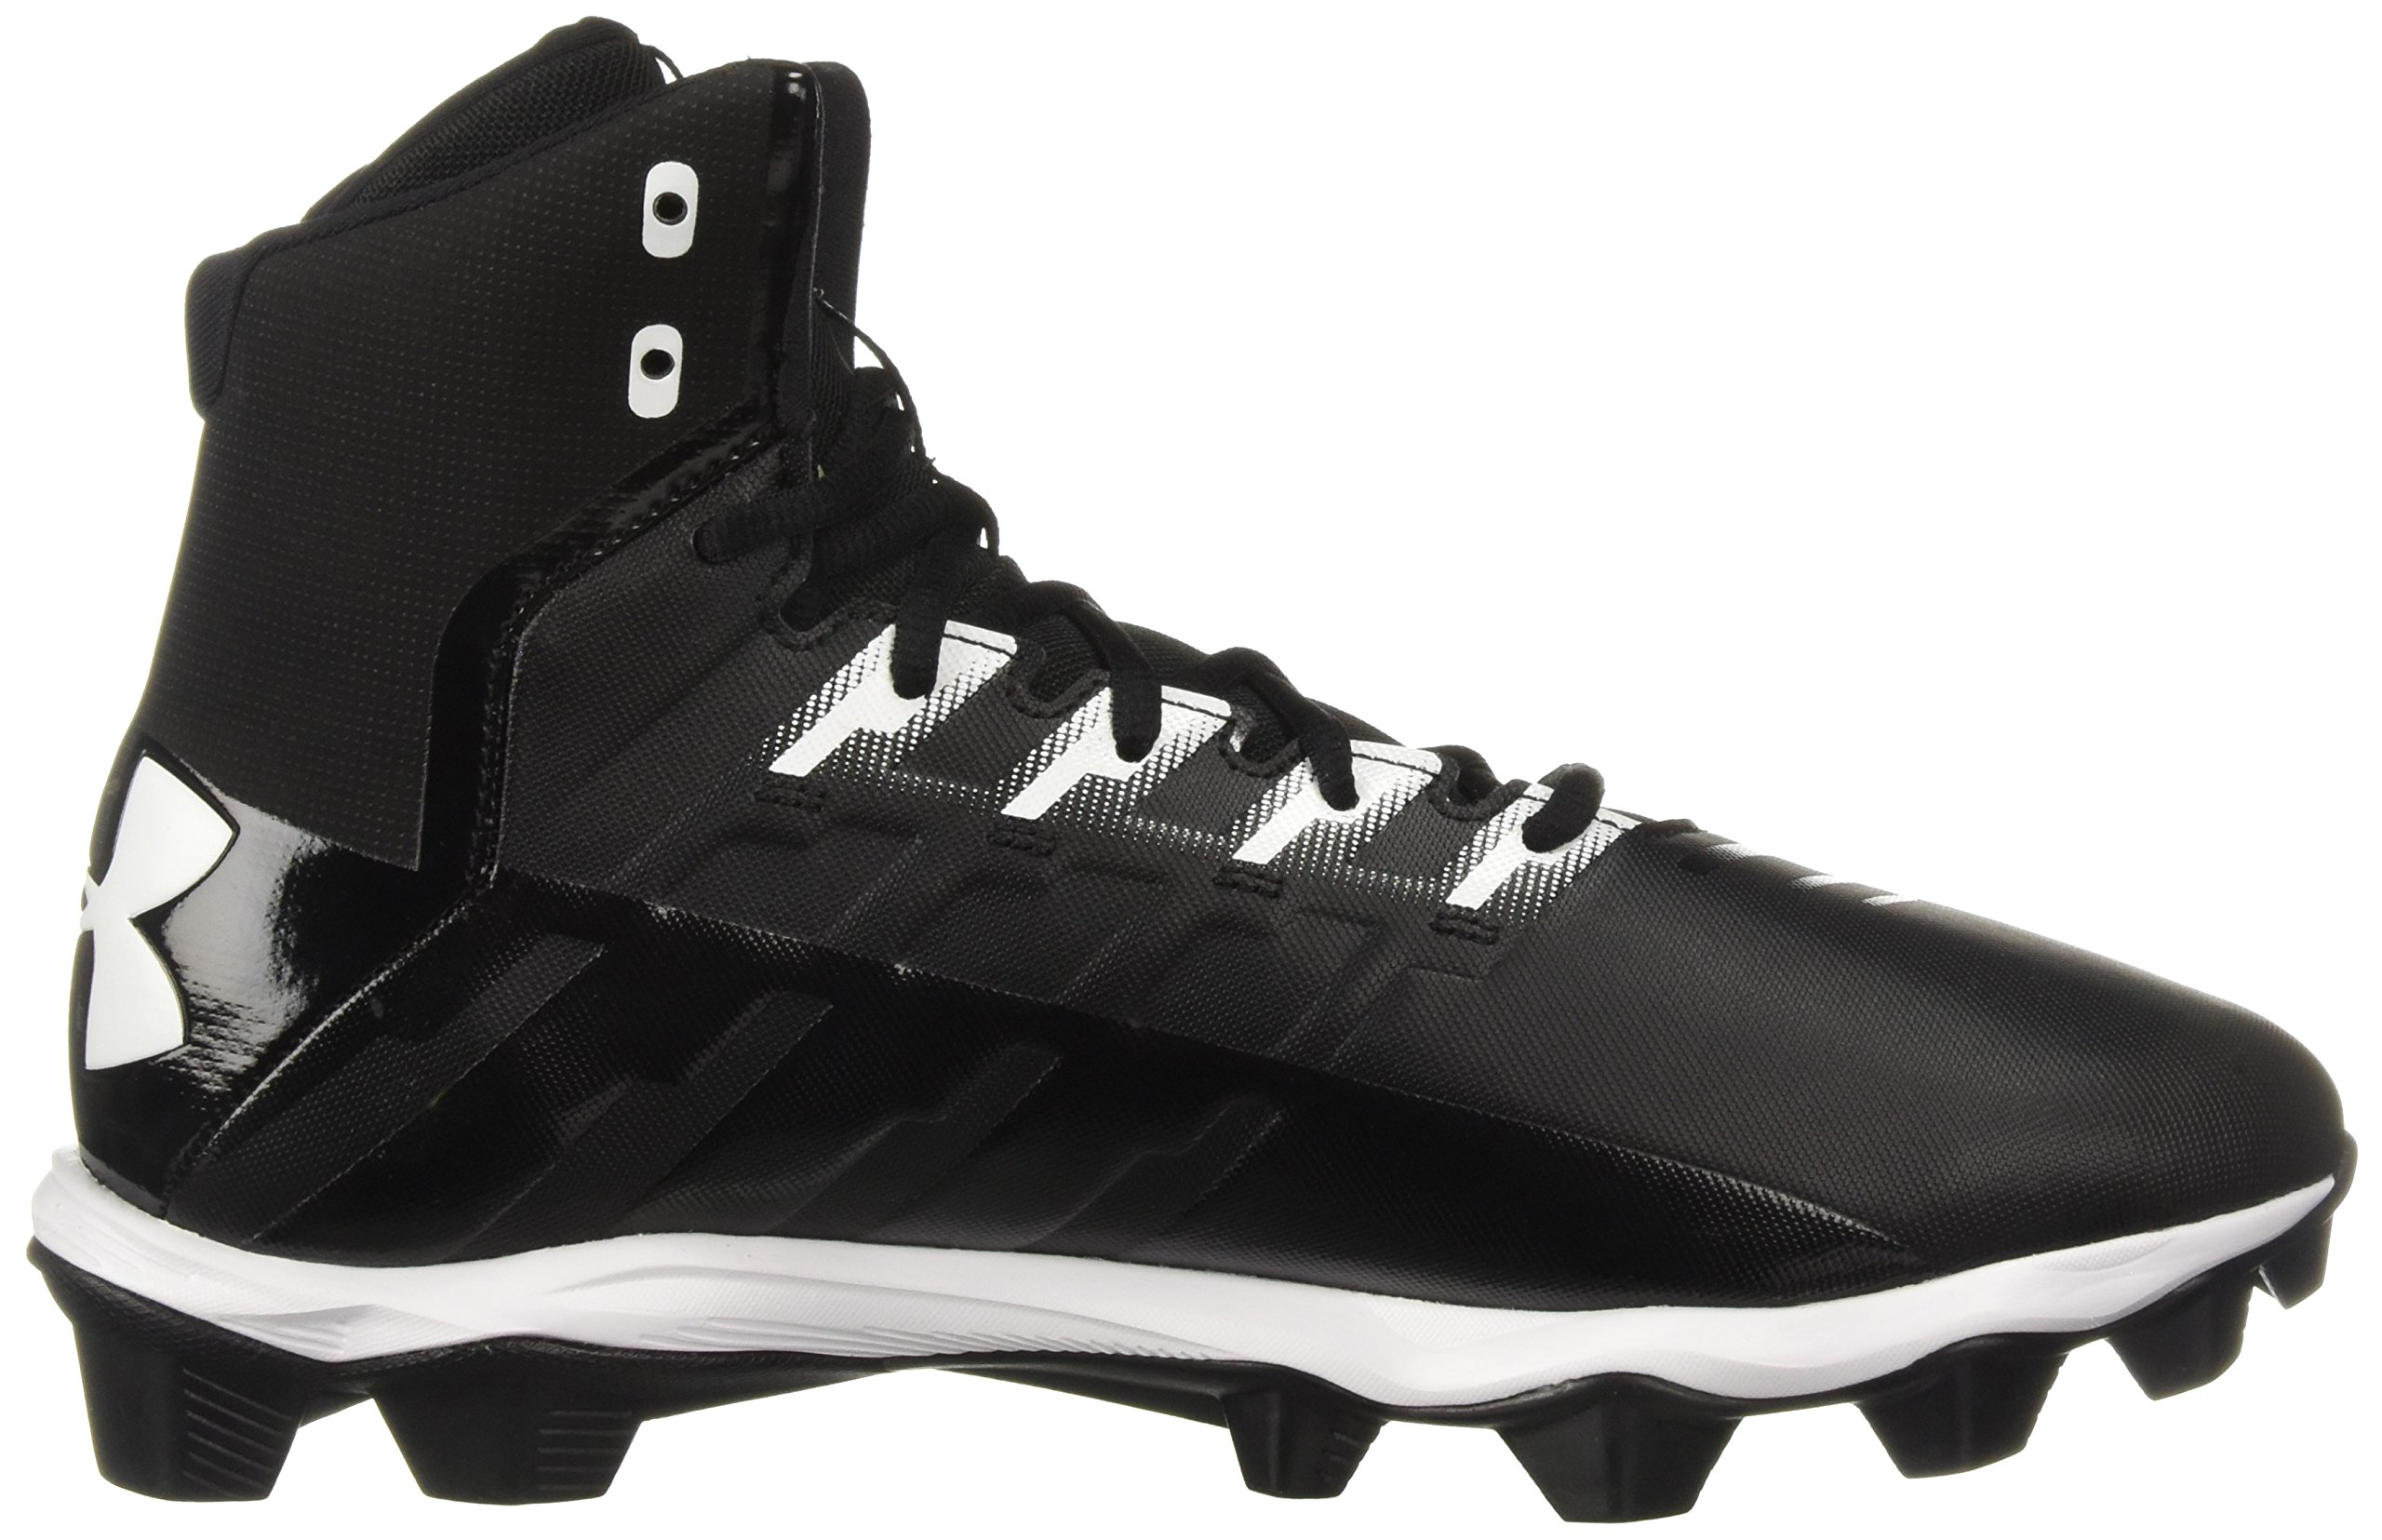 Under Armour Men's Renegade RM Wide Football Shoe 002/Black, 11 W US by Under Armour (Image #6)